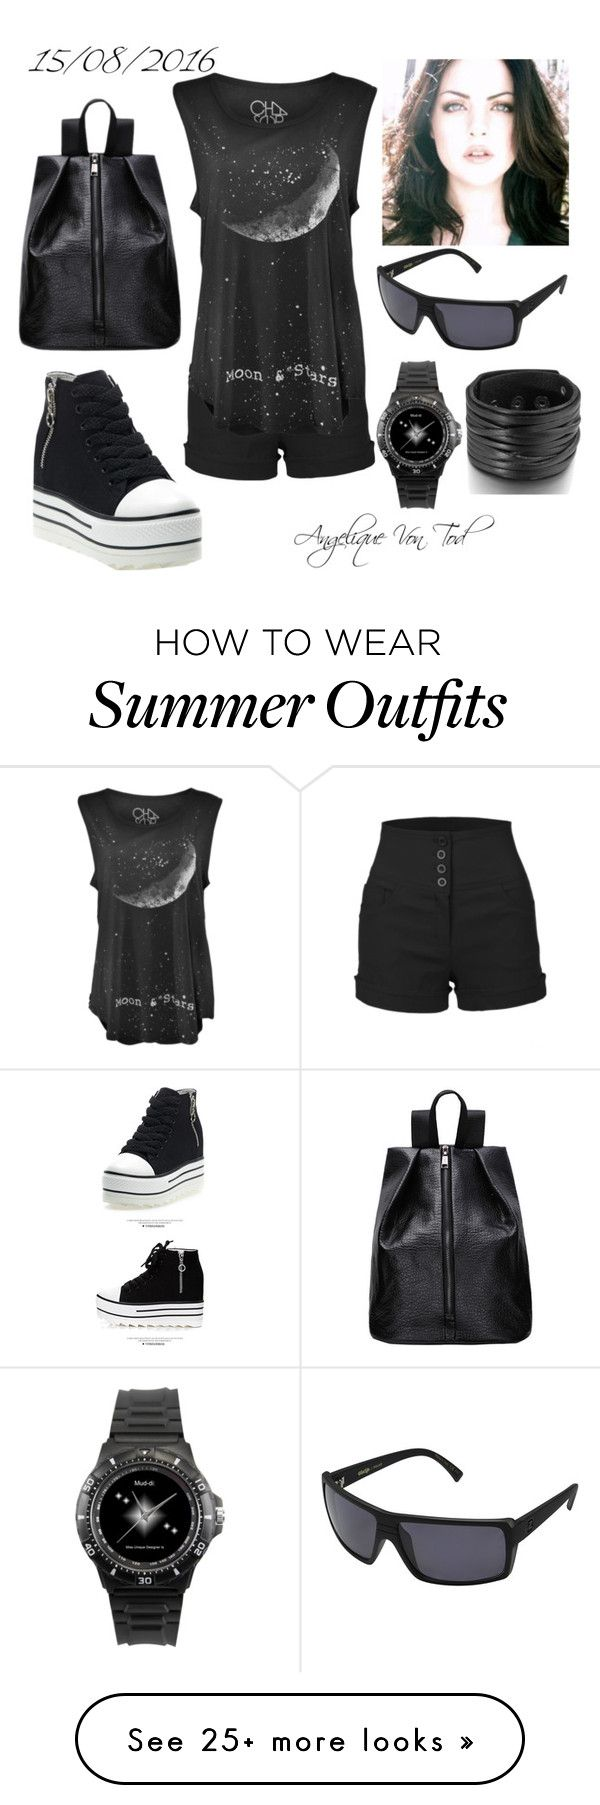 """""""Goth Summer Outfit"""" by angelique-von-tod on Polyvore featuring LE3NO,..."""